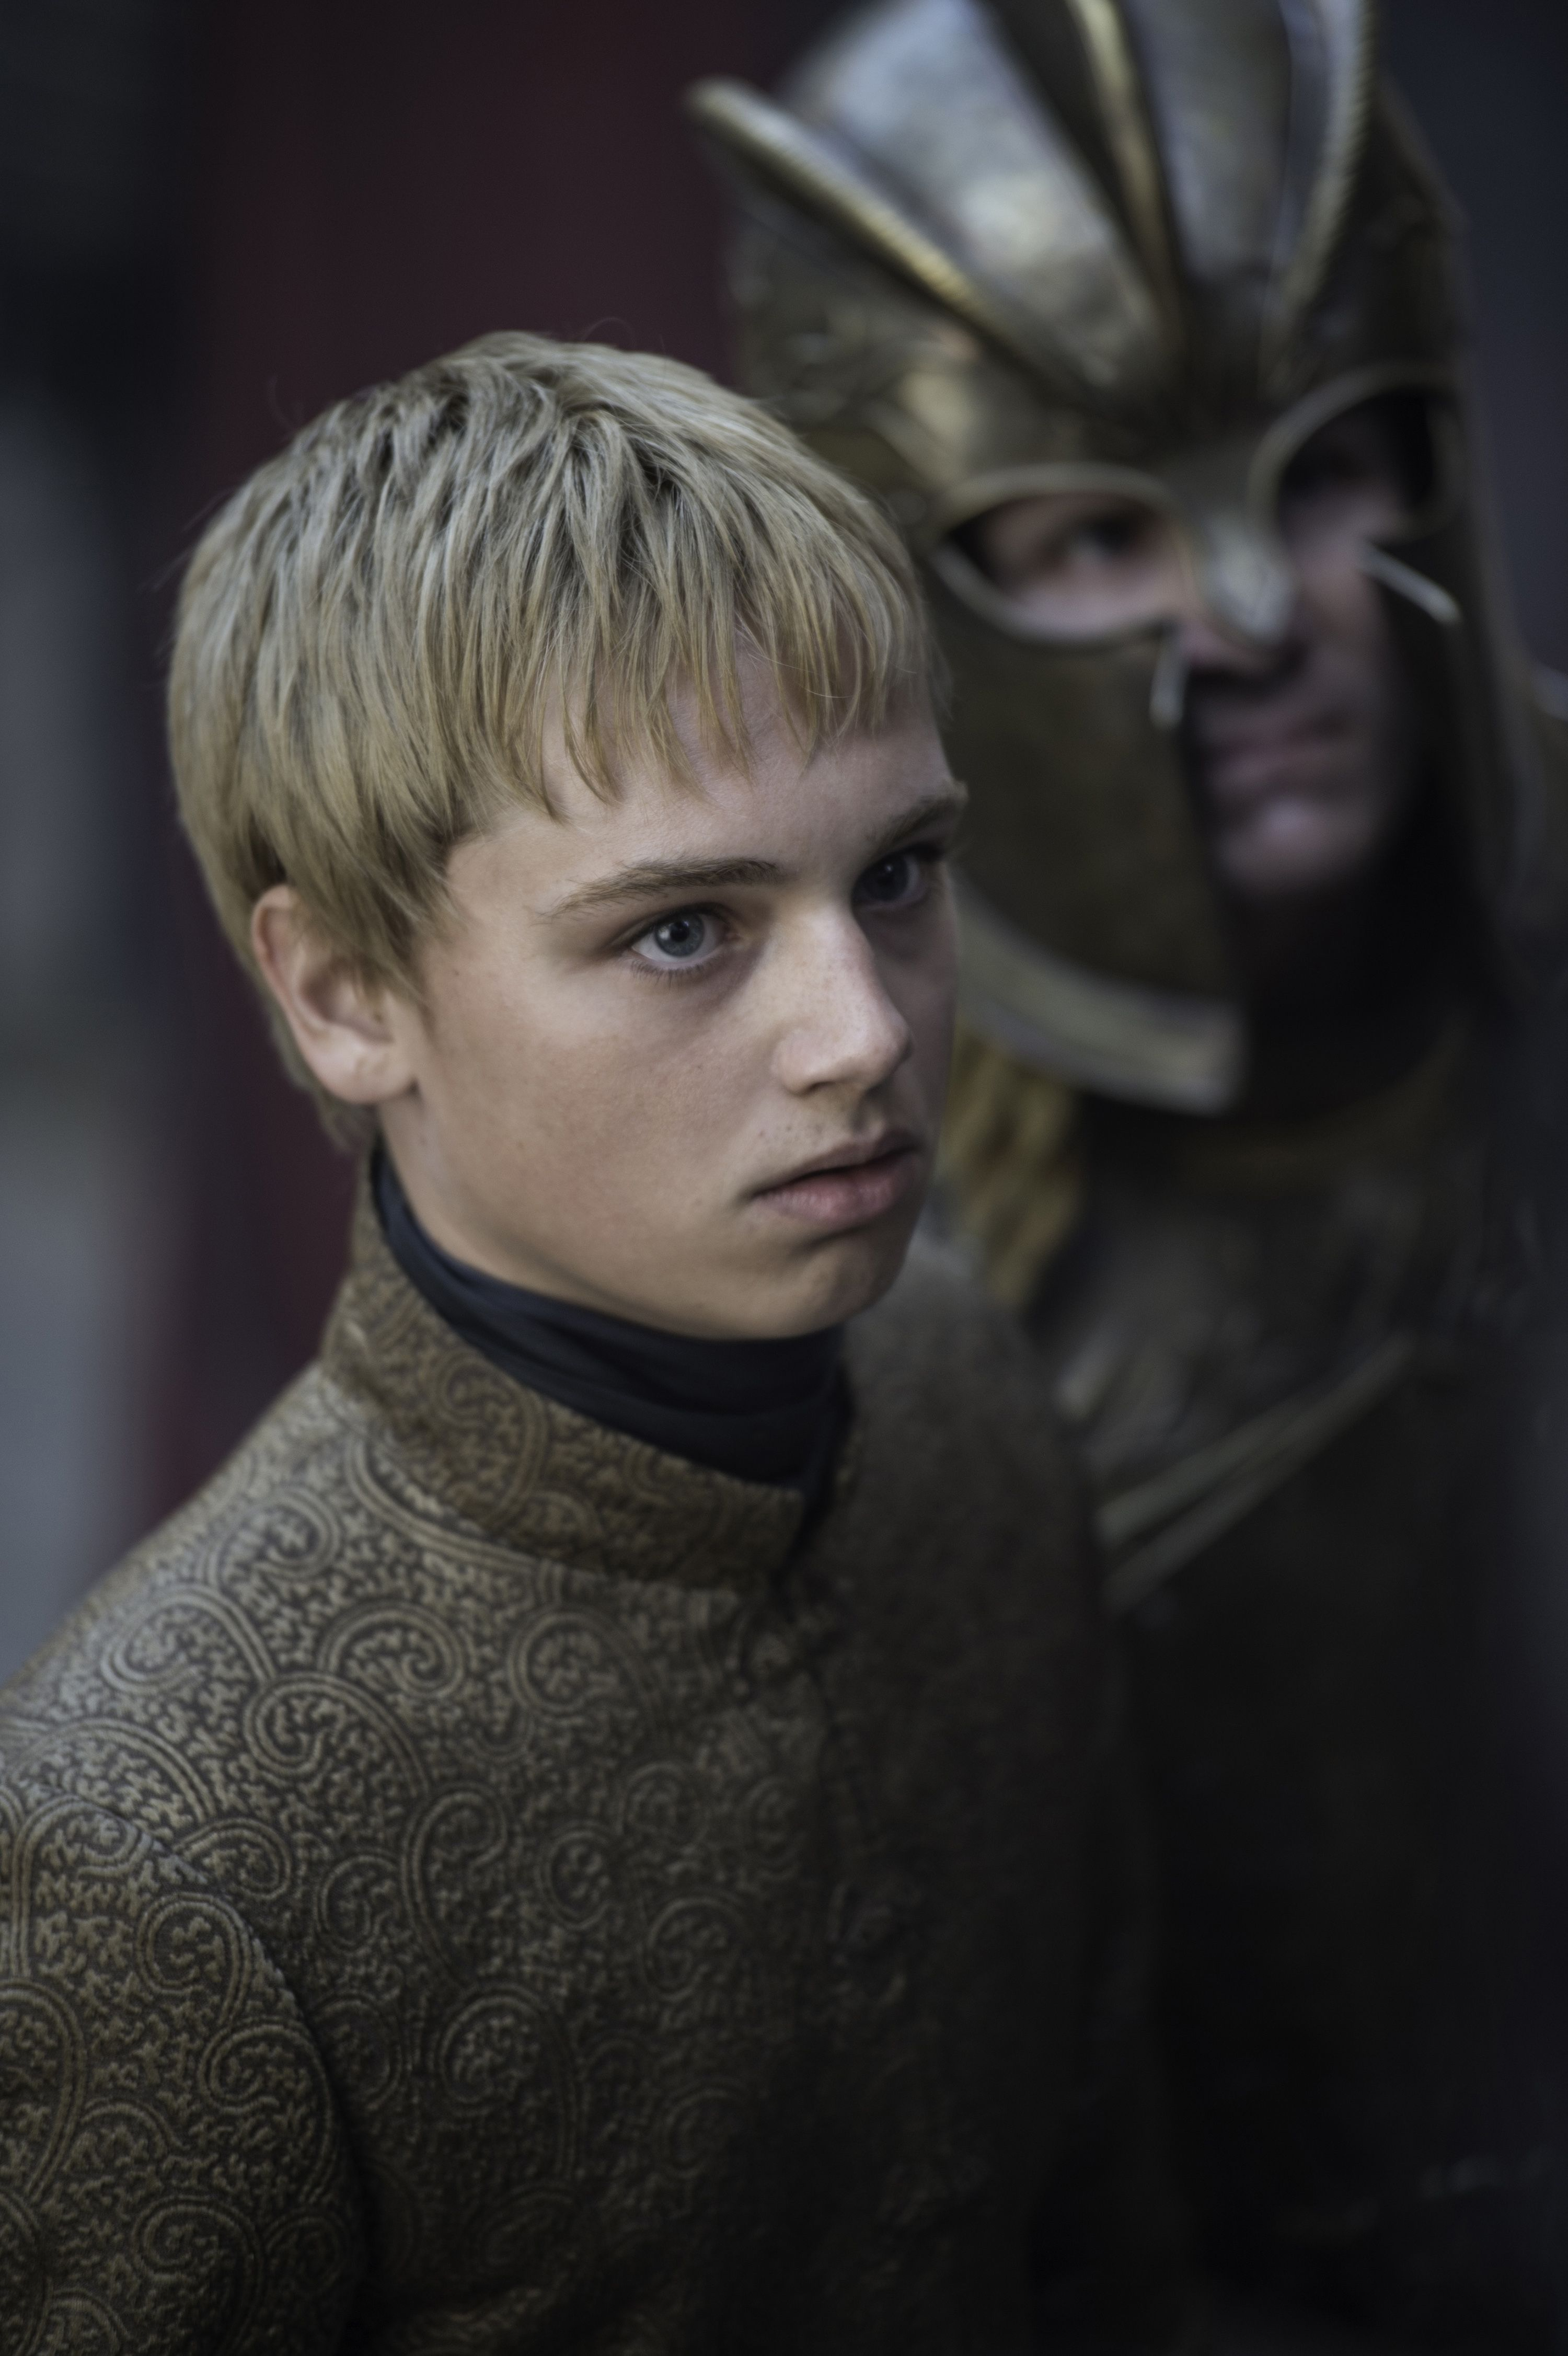 Tommen Baratheon and Martyn Lannister Played by Same Actor - Dean